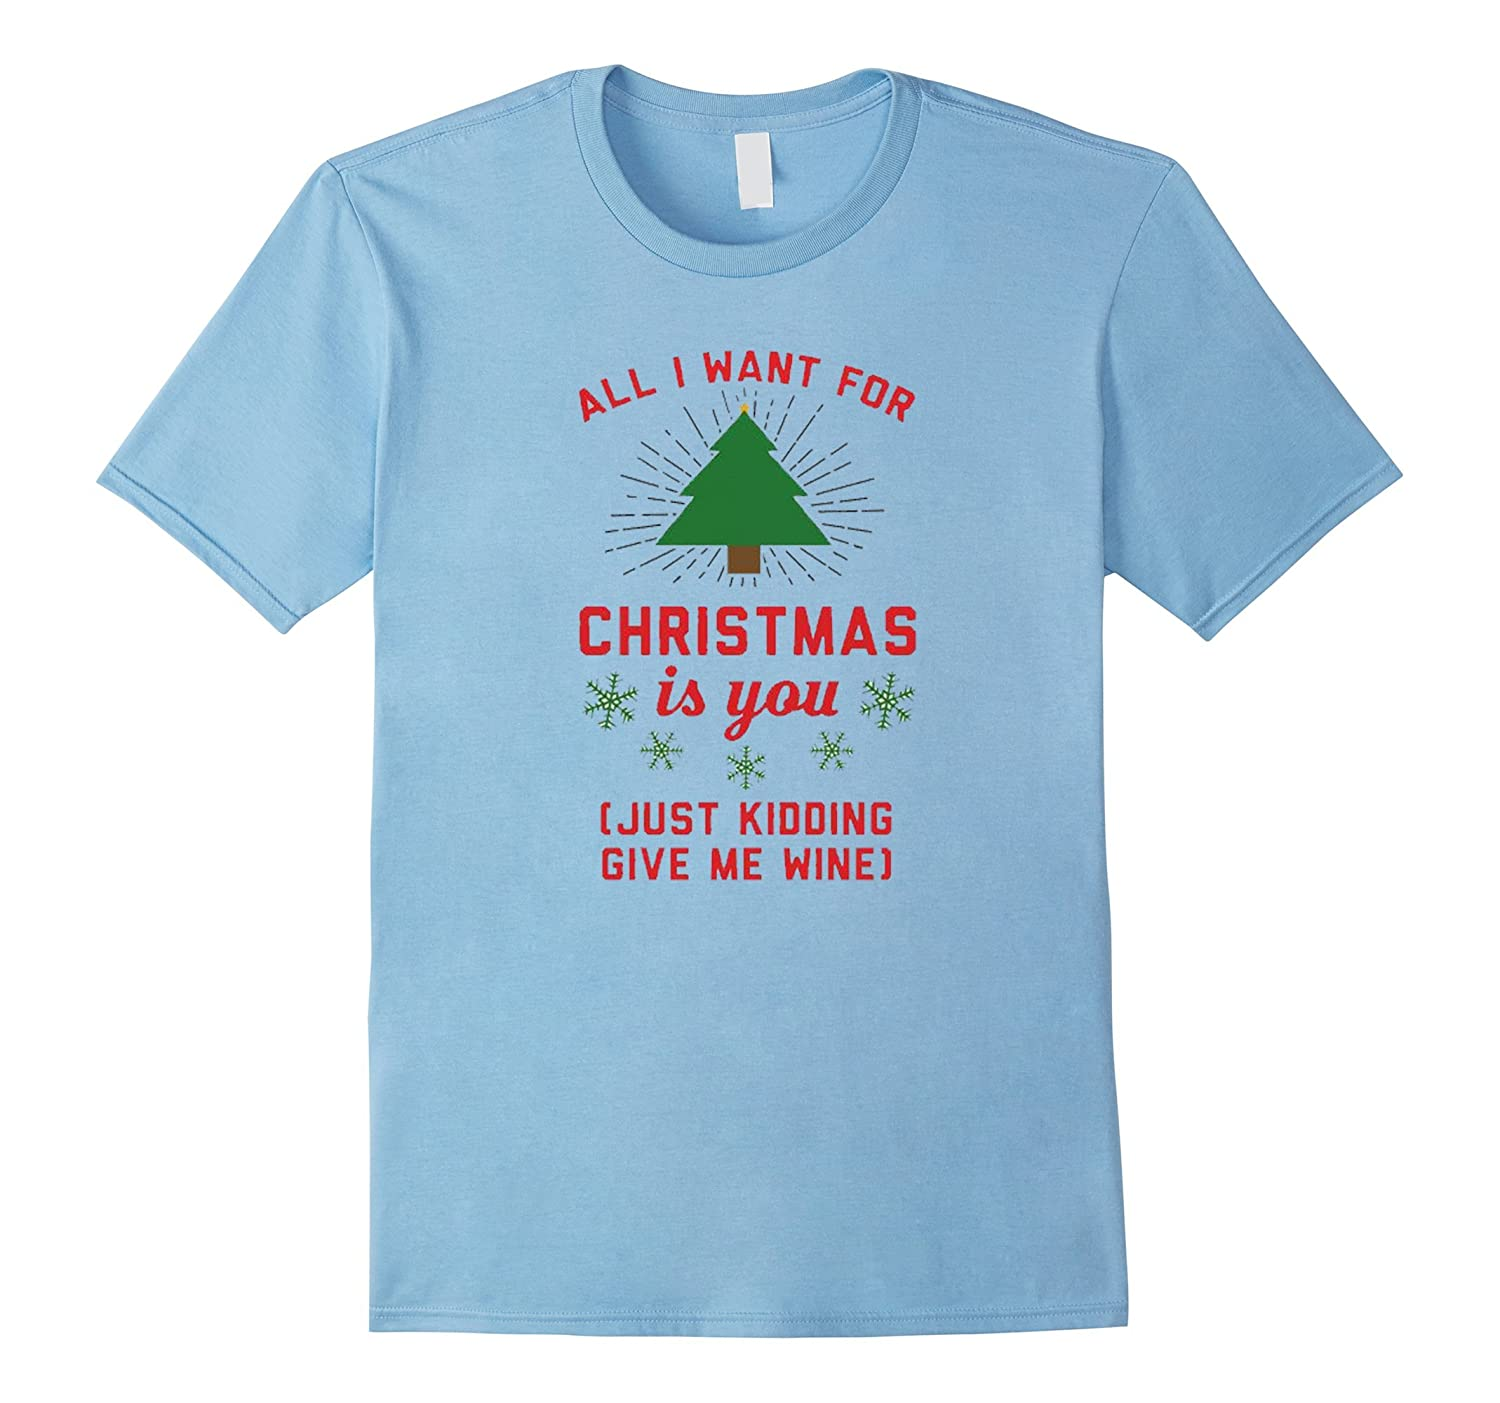 All I want for christmas is you. Give me wine T shirt-BN